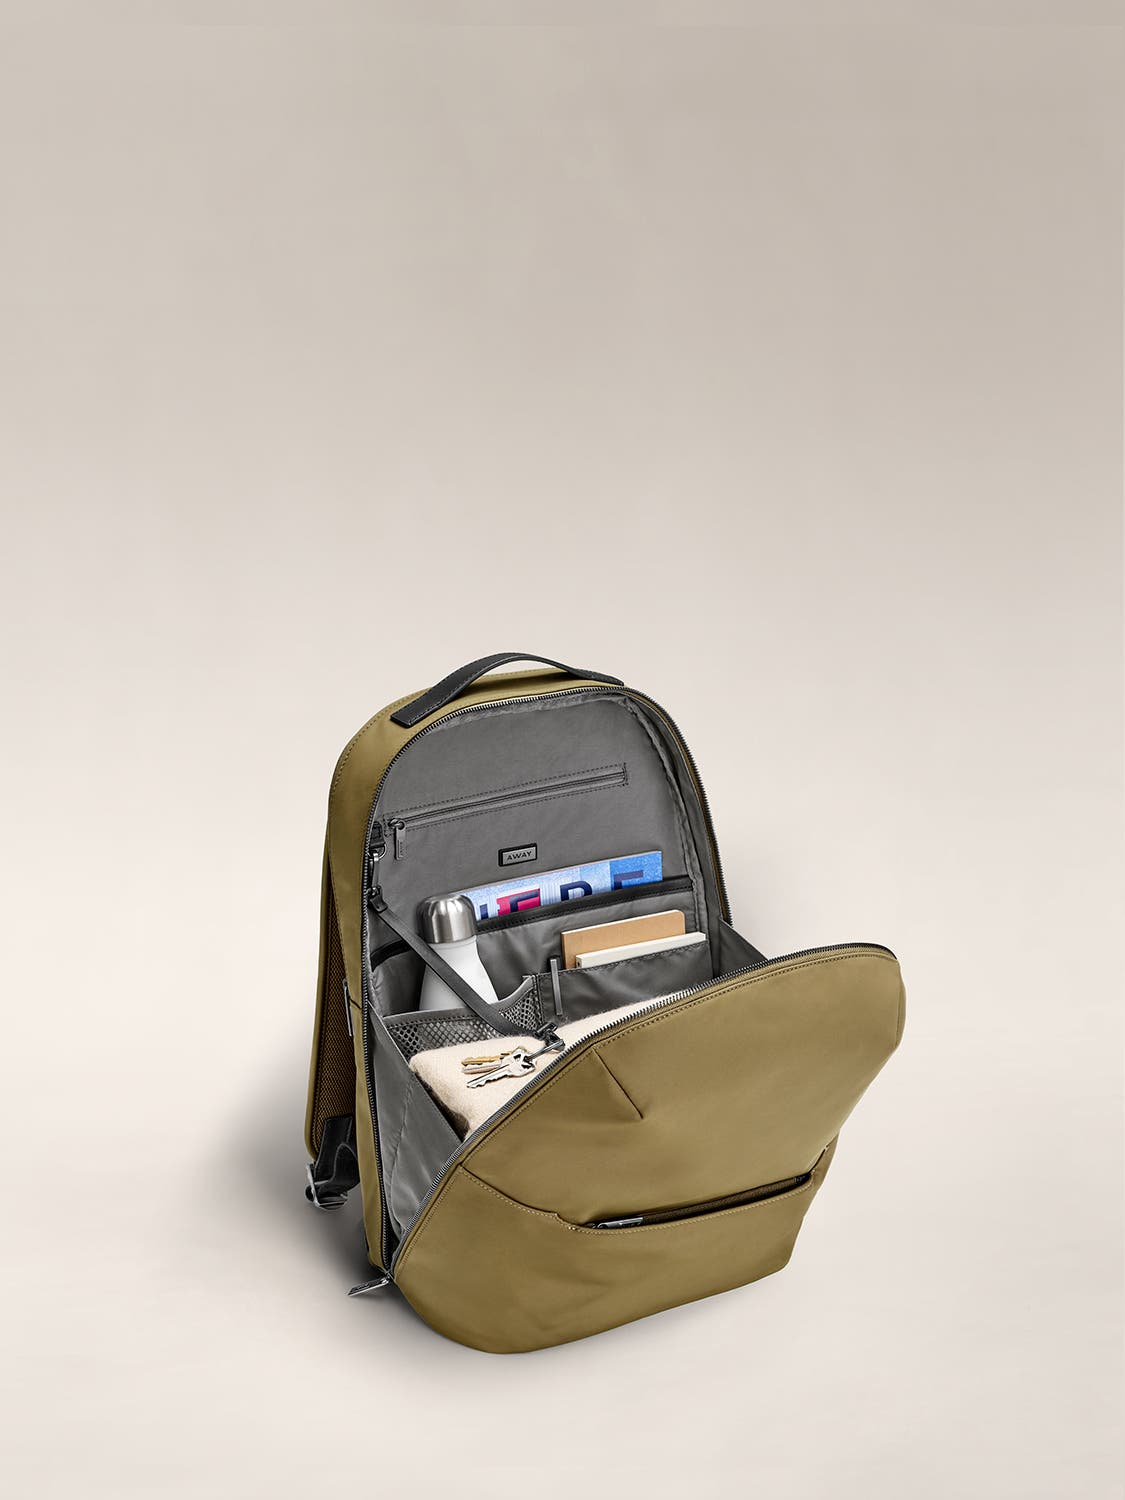 Inside view of moss green backpack with grey lining showing travel accessories packed and organized in the various pockets.